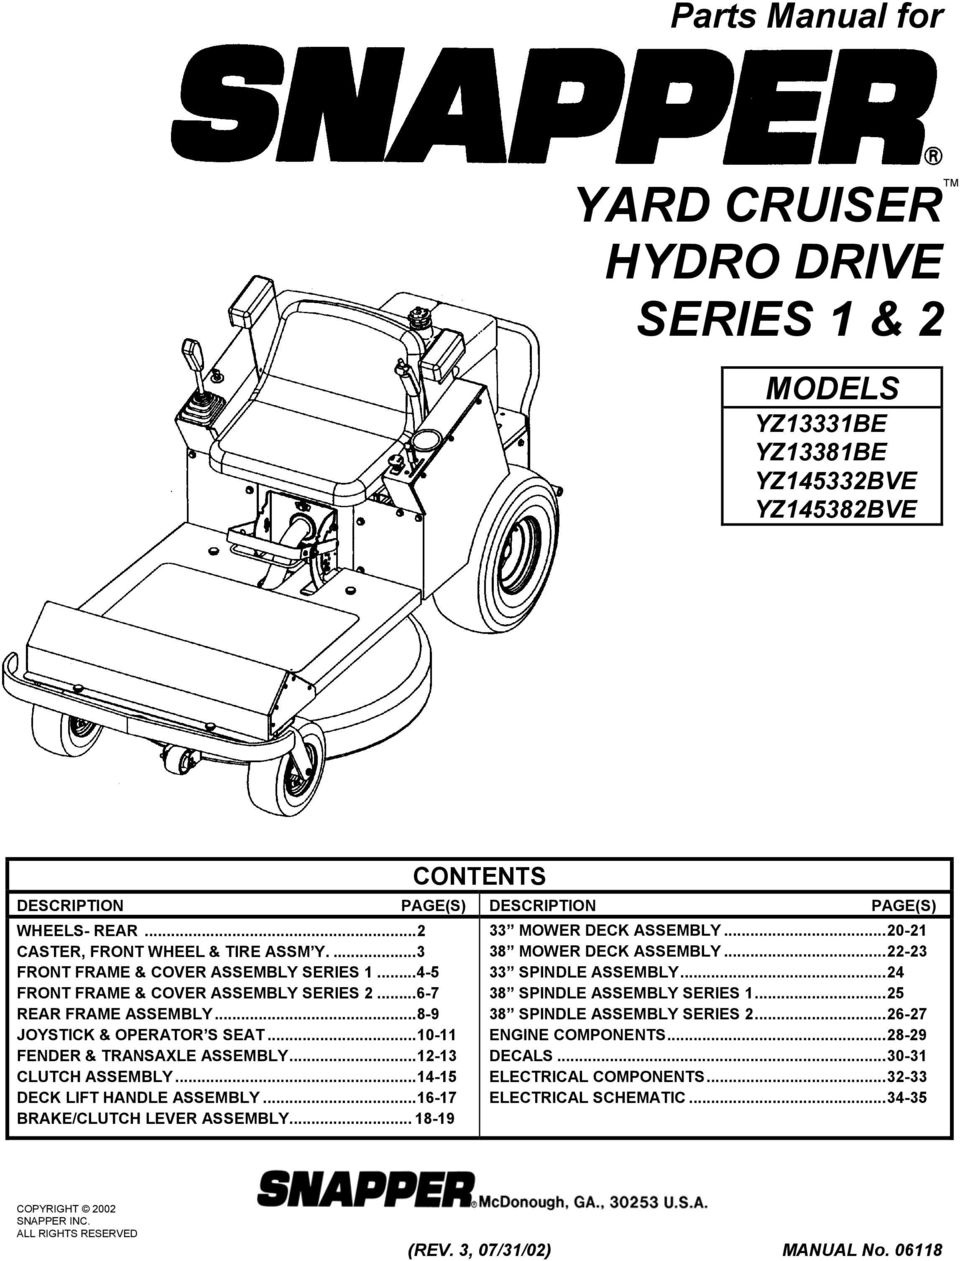 ..10-11 FENDER & TRANSAXLE ASSEMBLY...1-1 CLUTCH ASSEMBLY...1-15 DECK LIFT HANDLE ASSEMBLY...1-1 BRAKE/CLUTCH LEVER ASSEMBLY... 18-1 MOWER DECK ASSEMBLY...0-1 8 MOWER DECK ASSEMBLY.